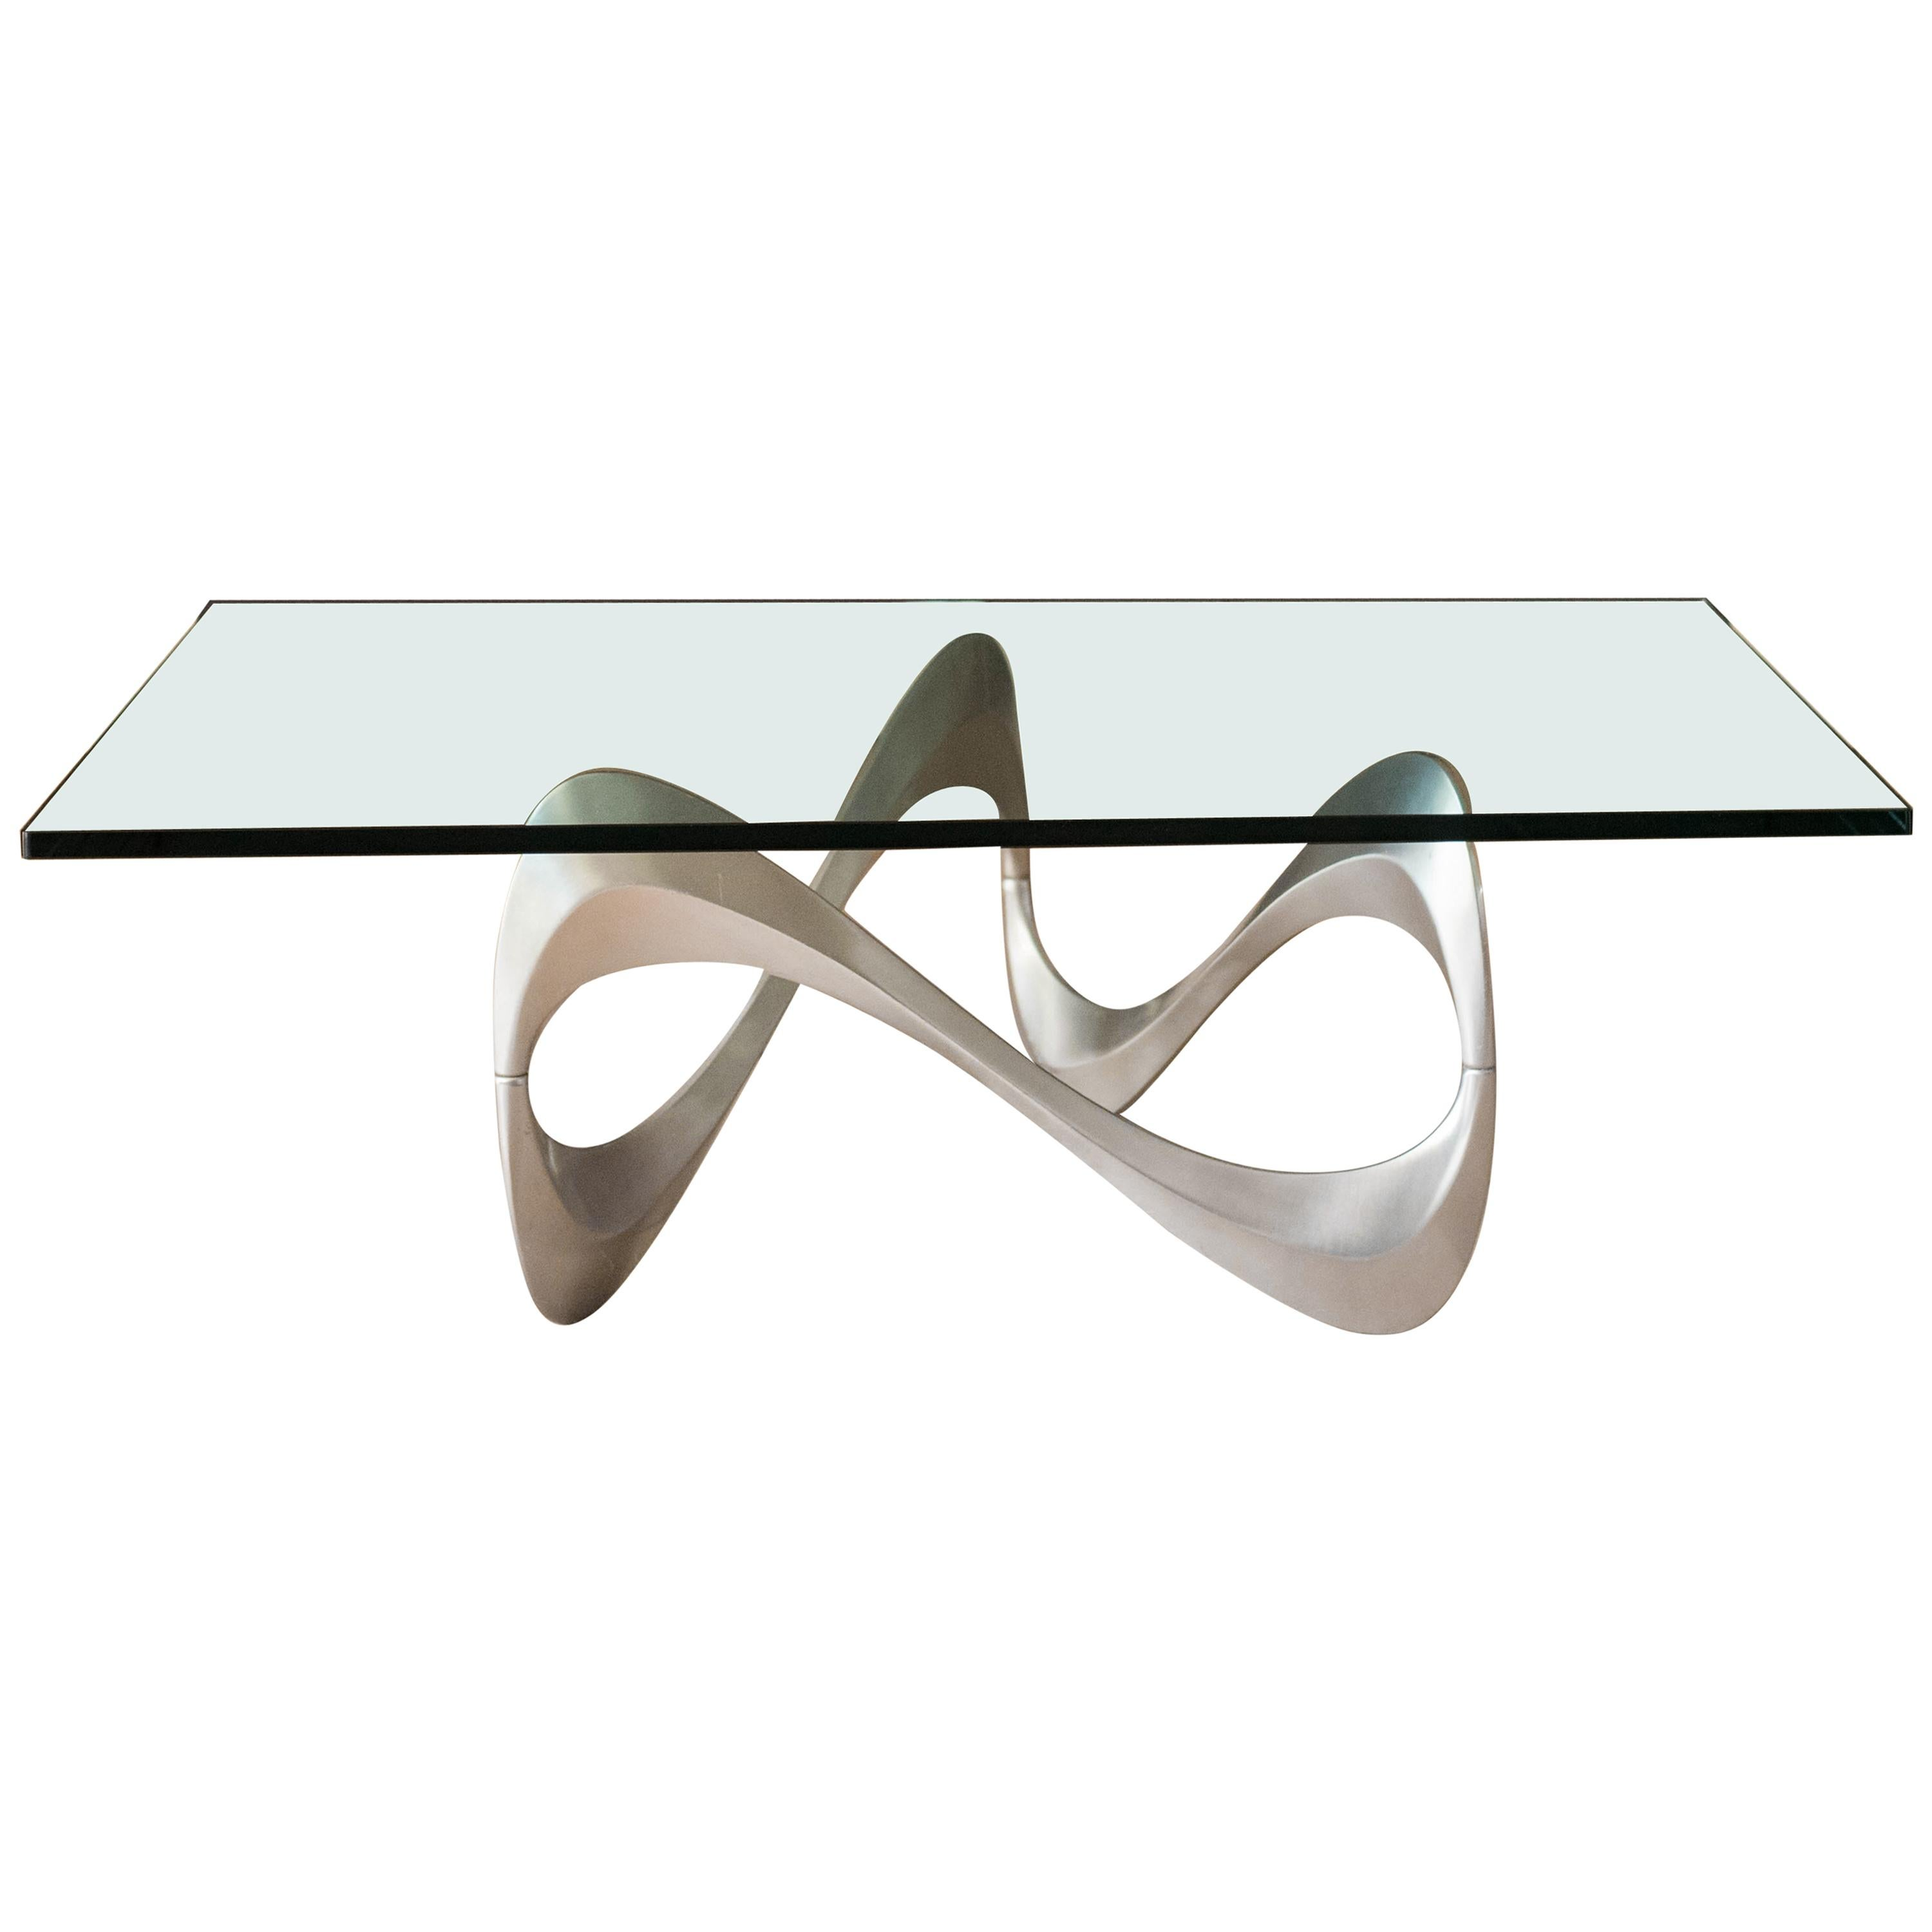 Vintage Sculptural Aluminum and Glass Coffee Table by Knut Hesterberg